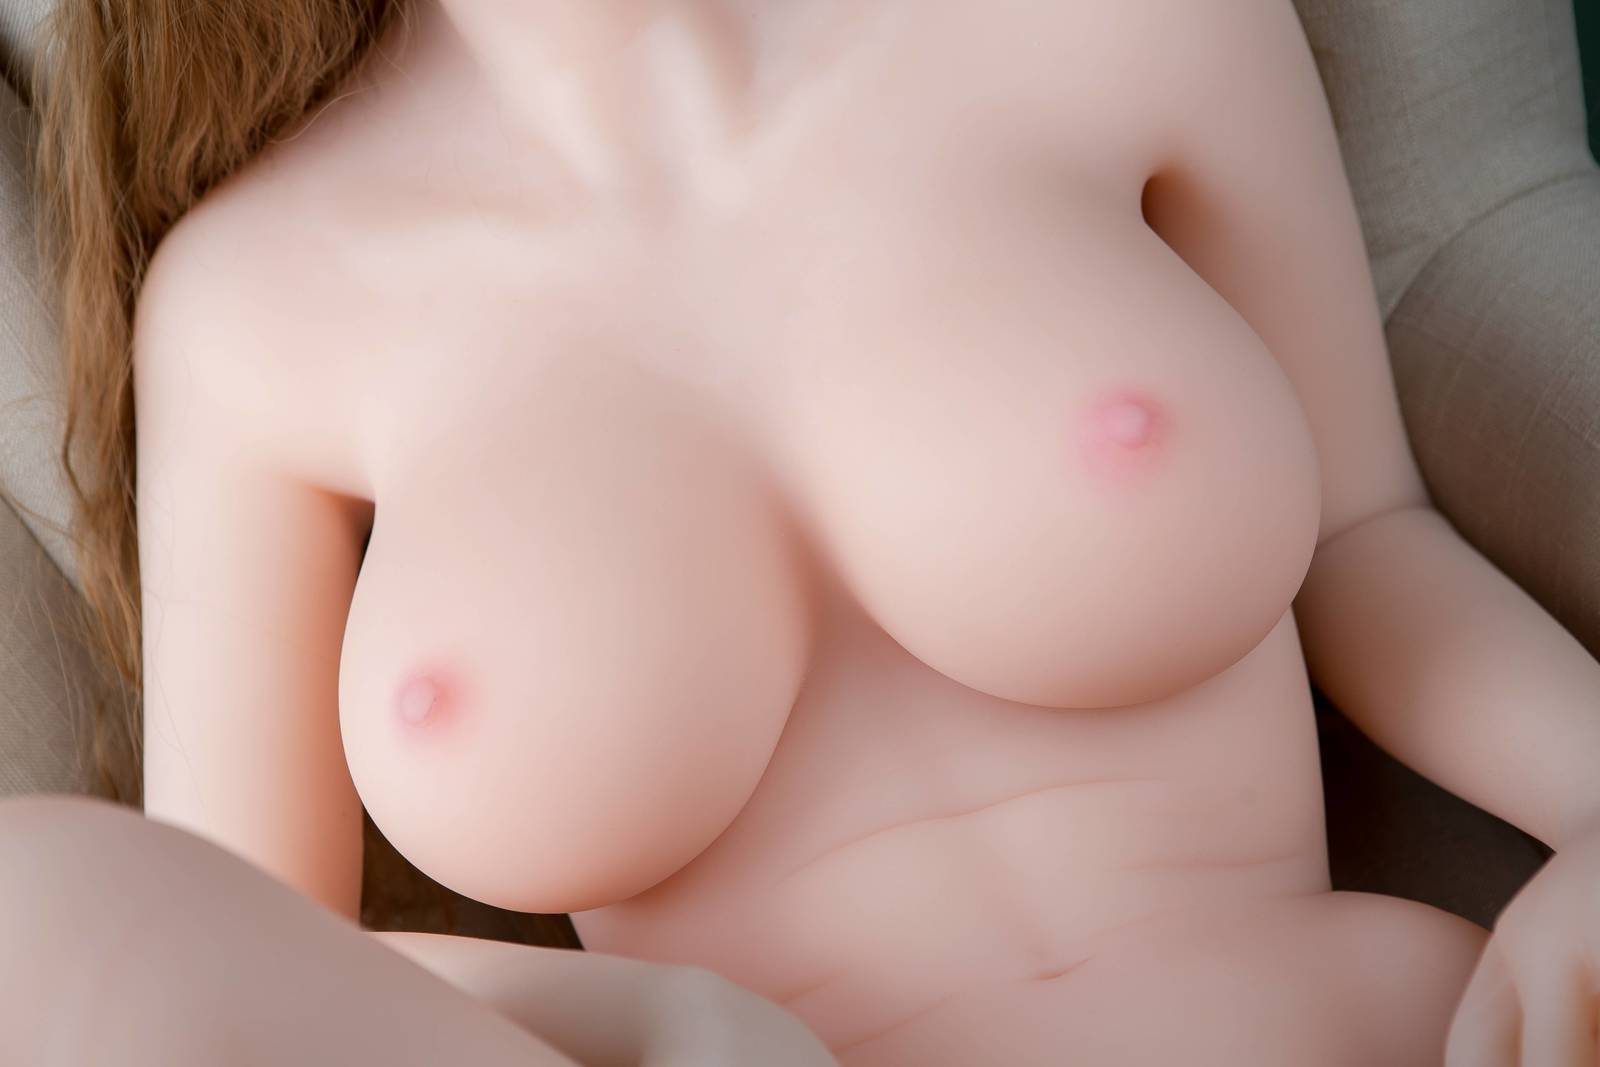 Sex Dolls Hollow Breasts and Solid Breasts Difference